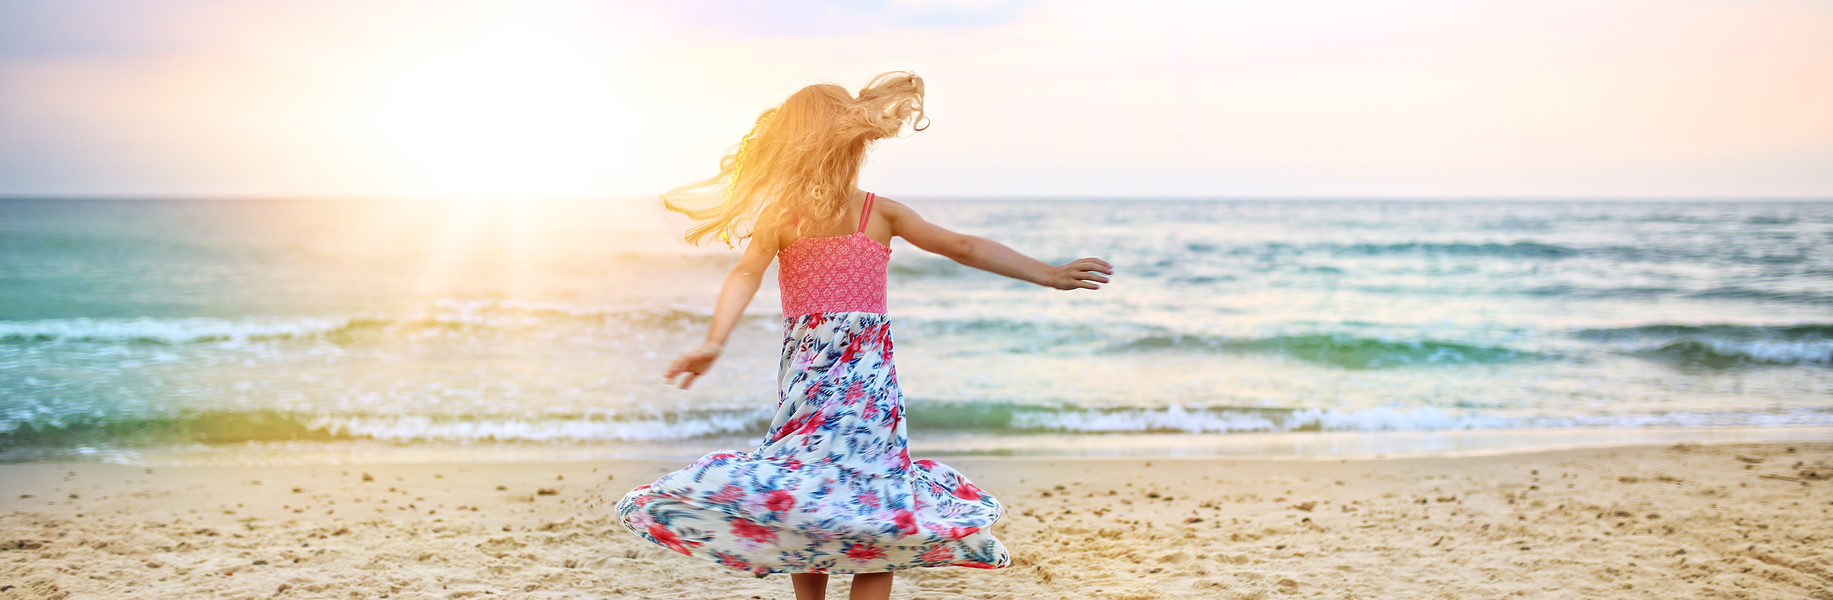 carefree girl dancing on the beach in a dress joy